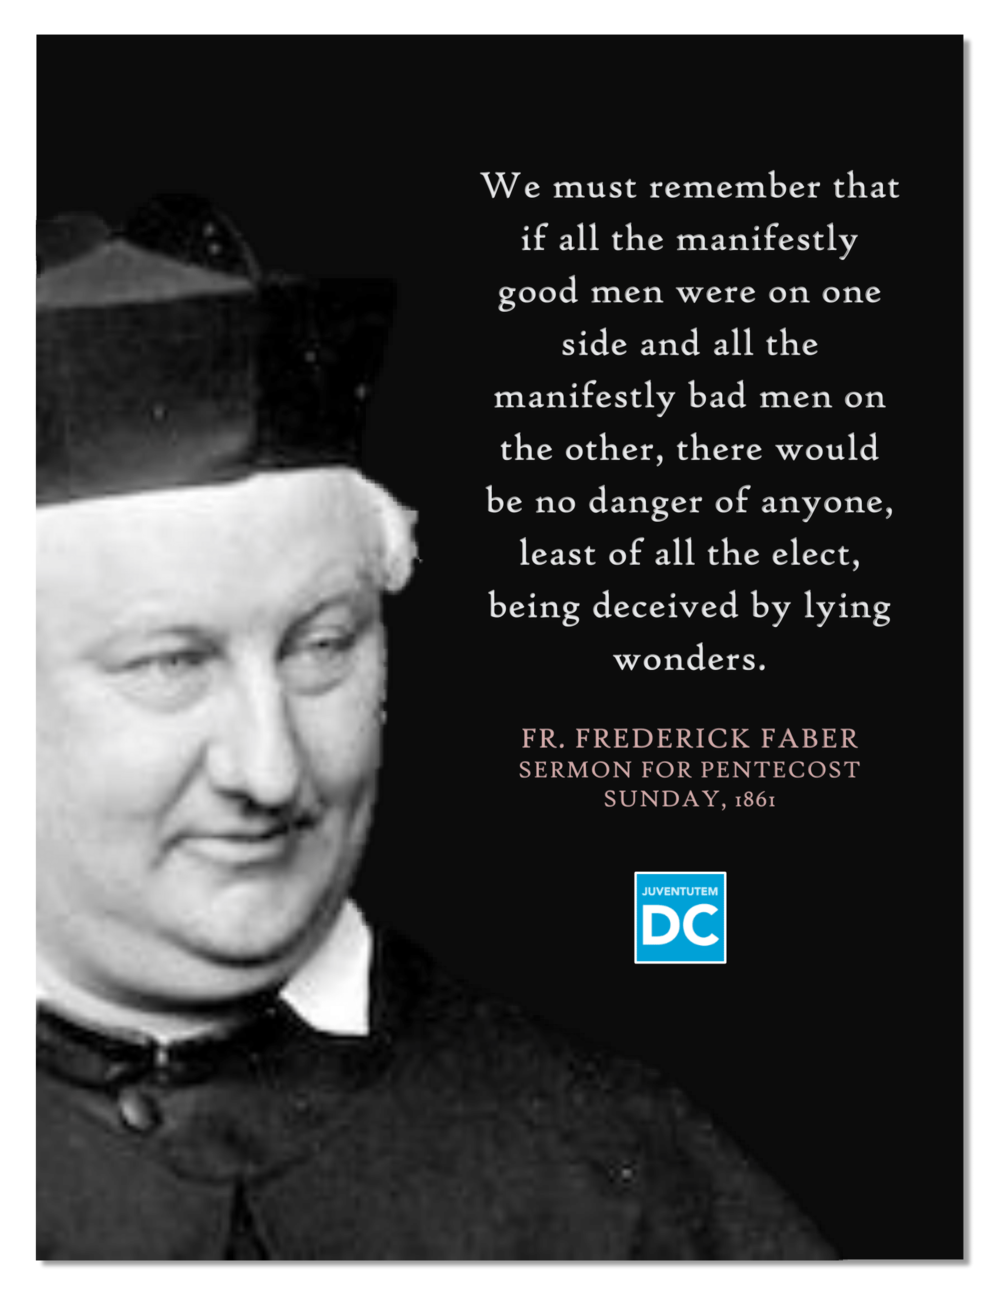 Fr Frederick Faber Quote for Pentecost Sunday-1.png